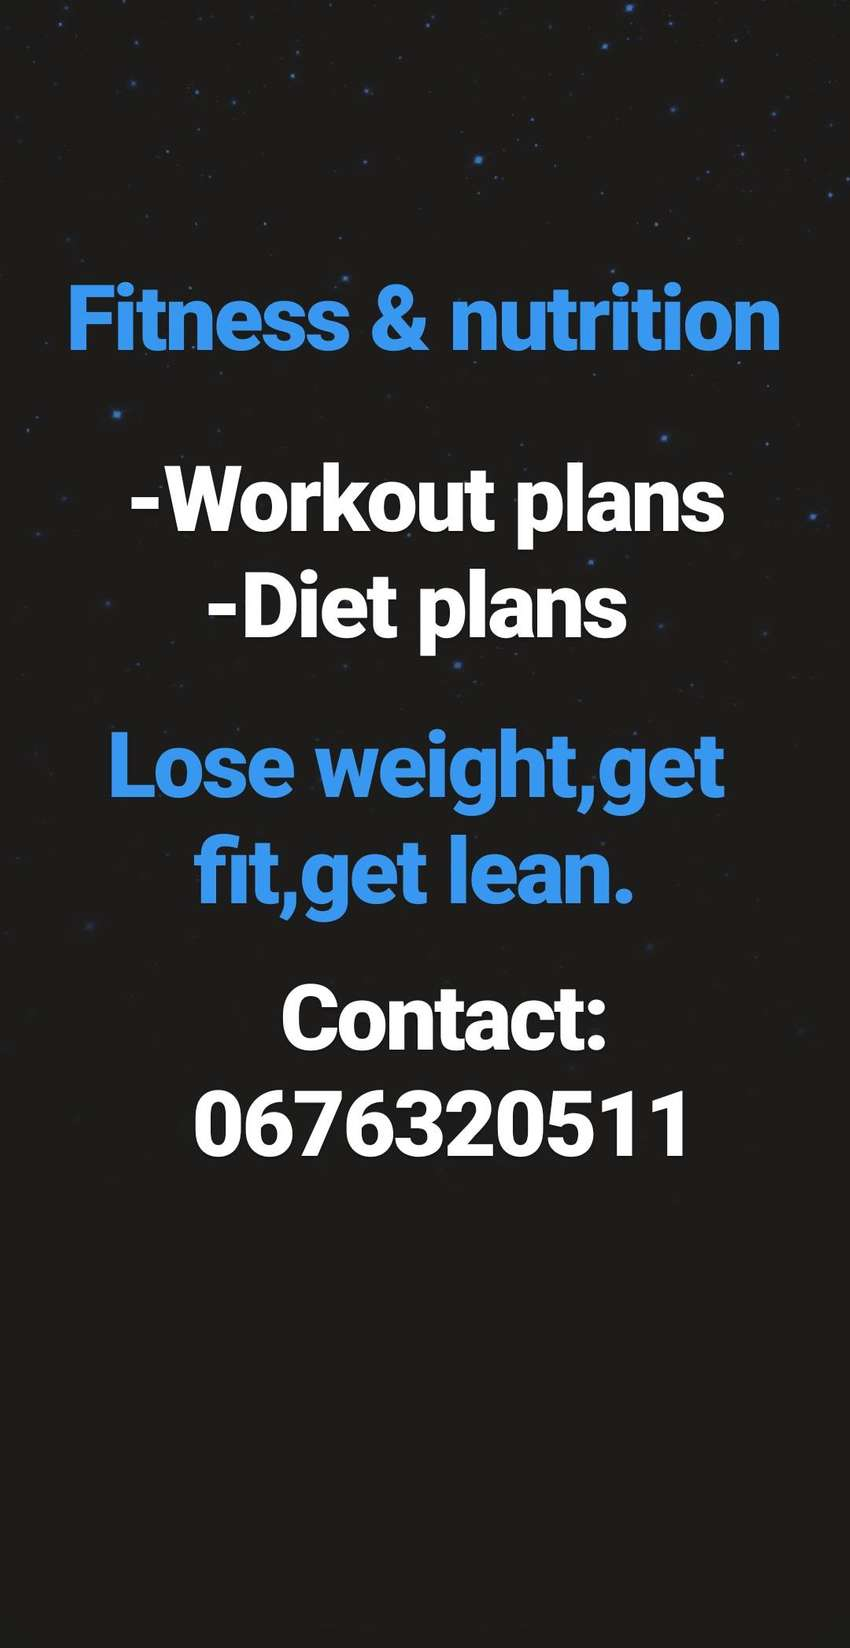 Fitness and nutrtion 0